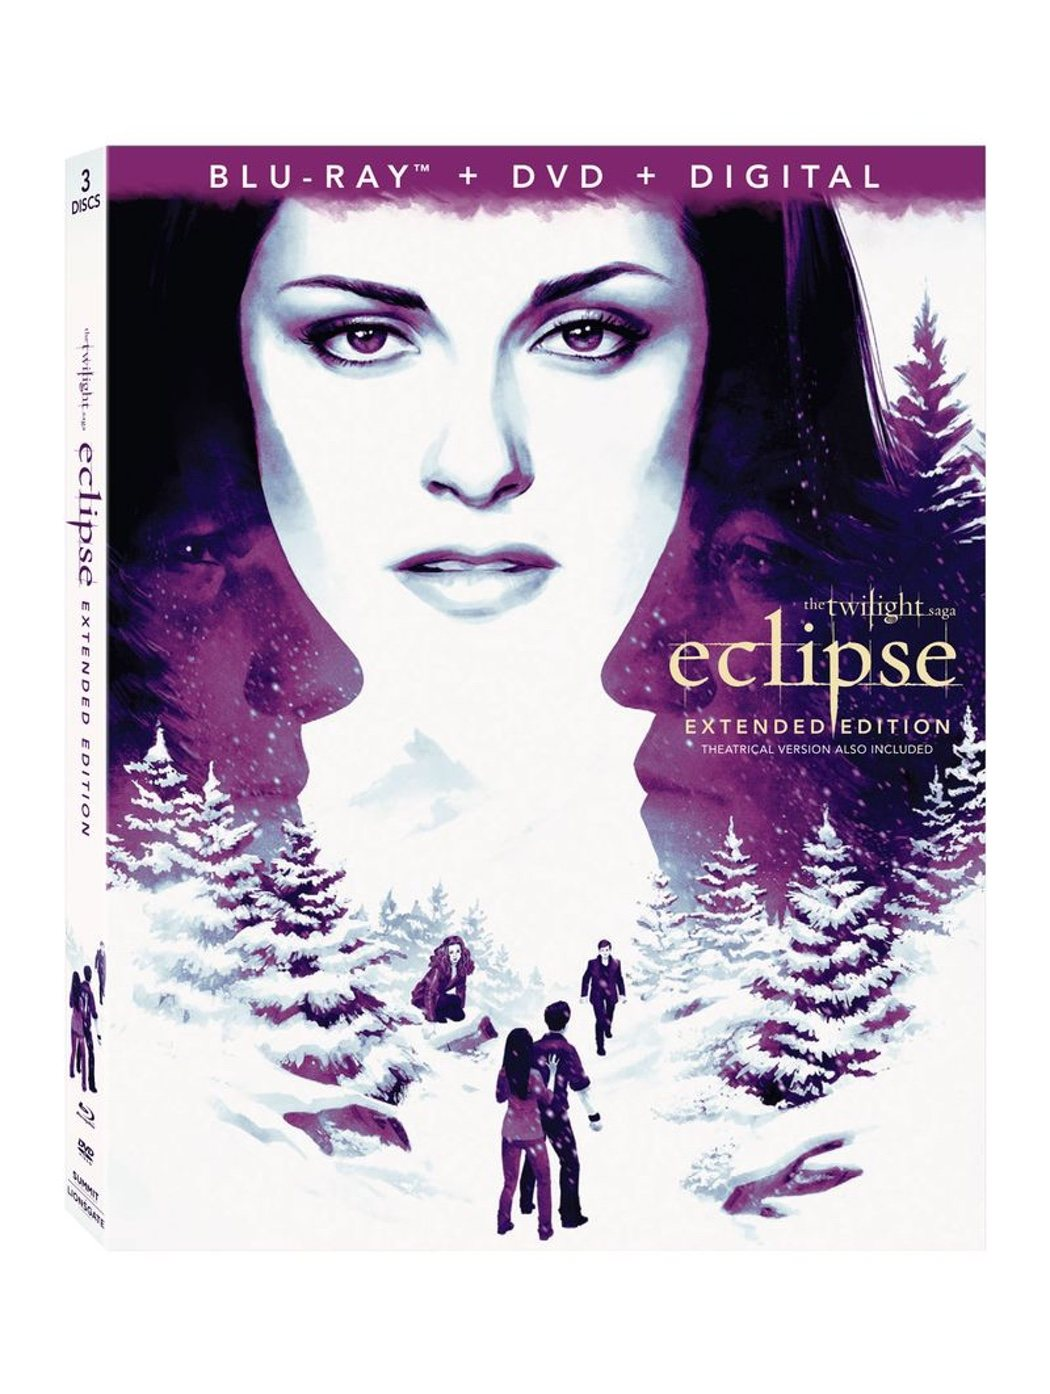 'Eclipse'